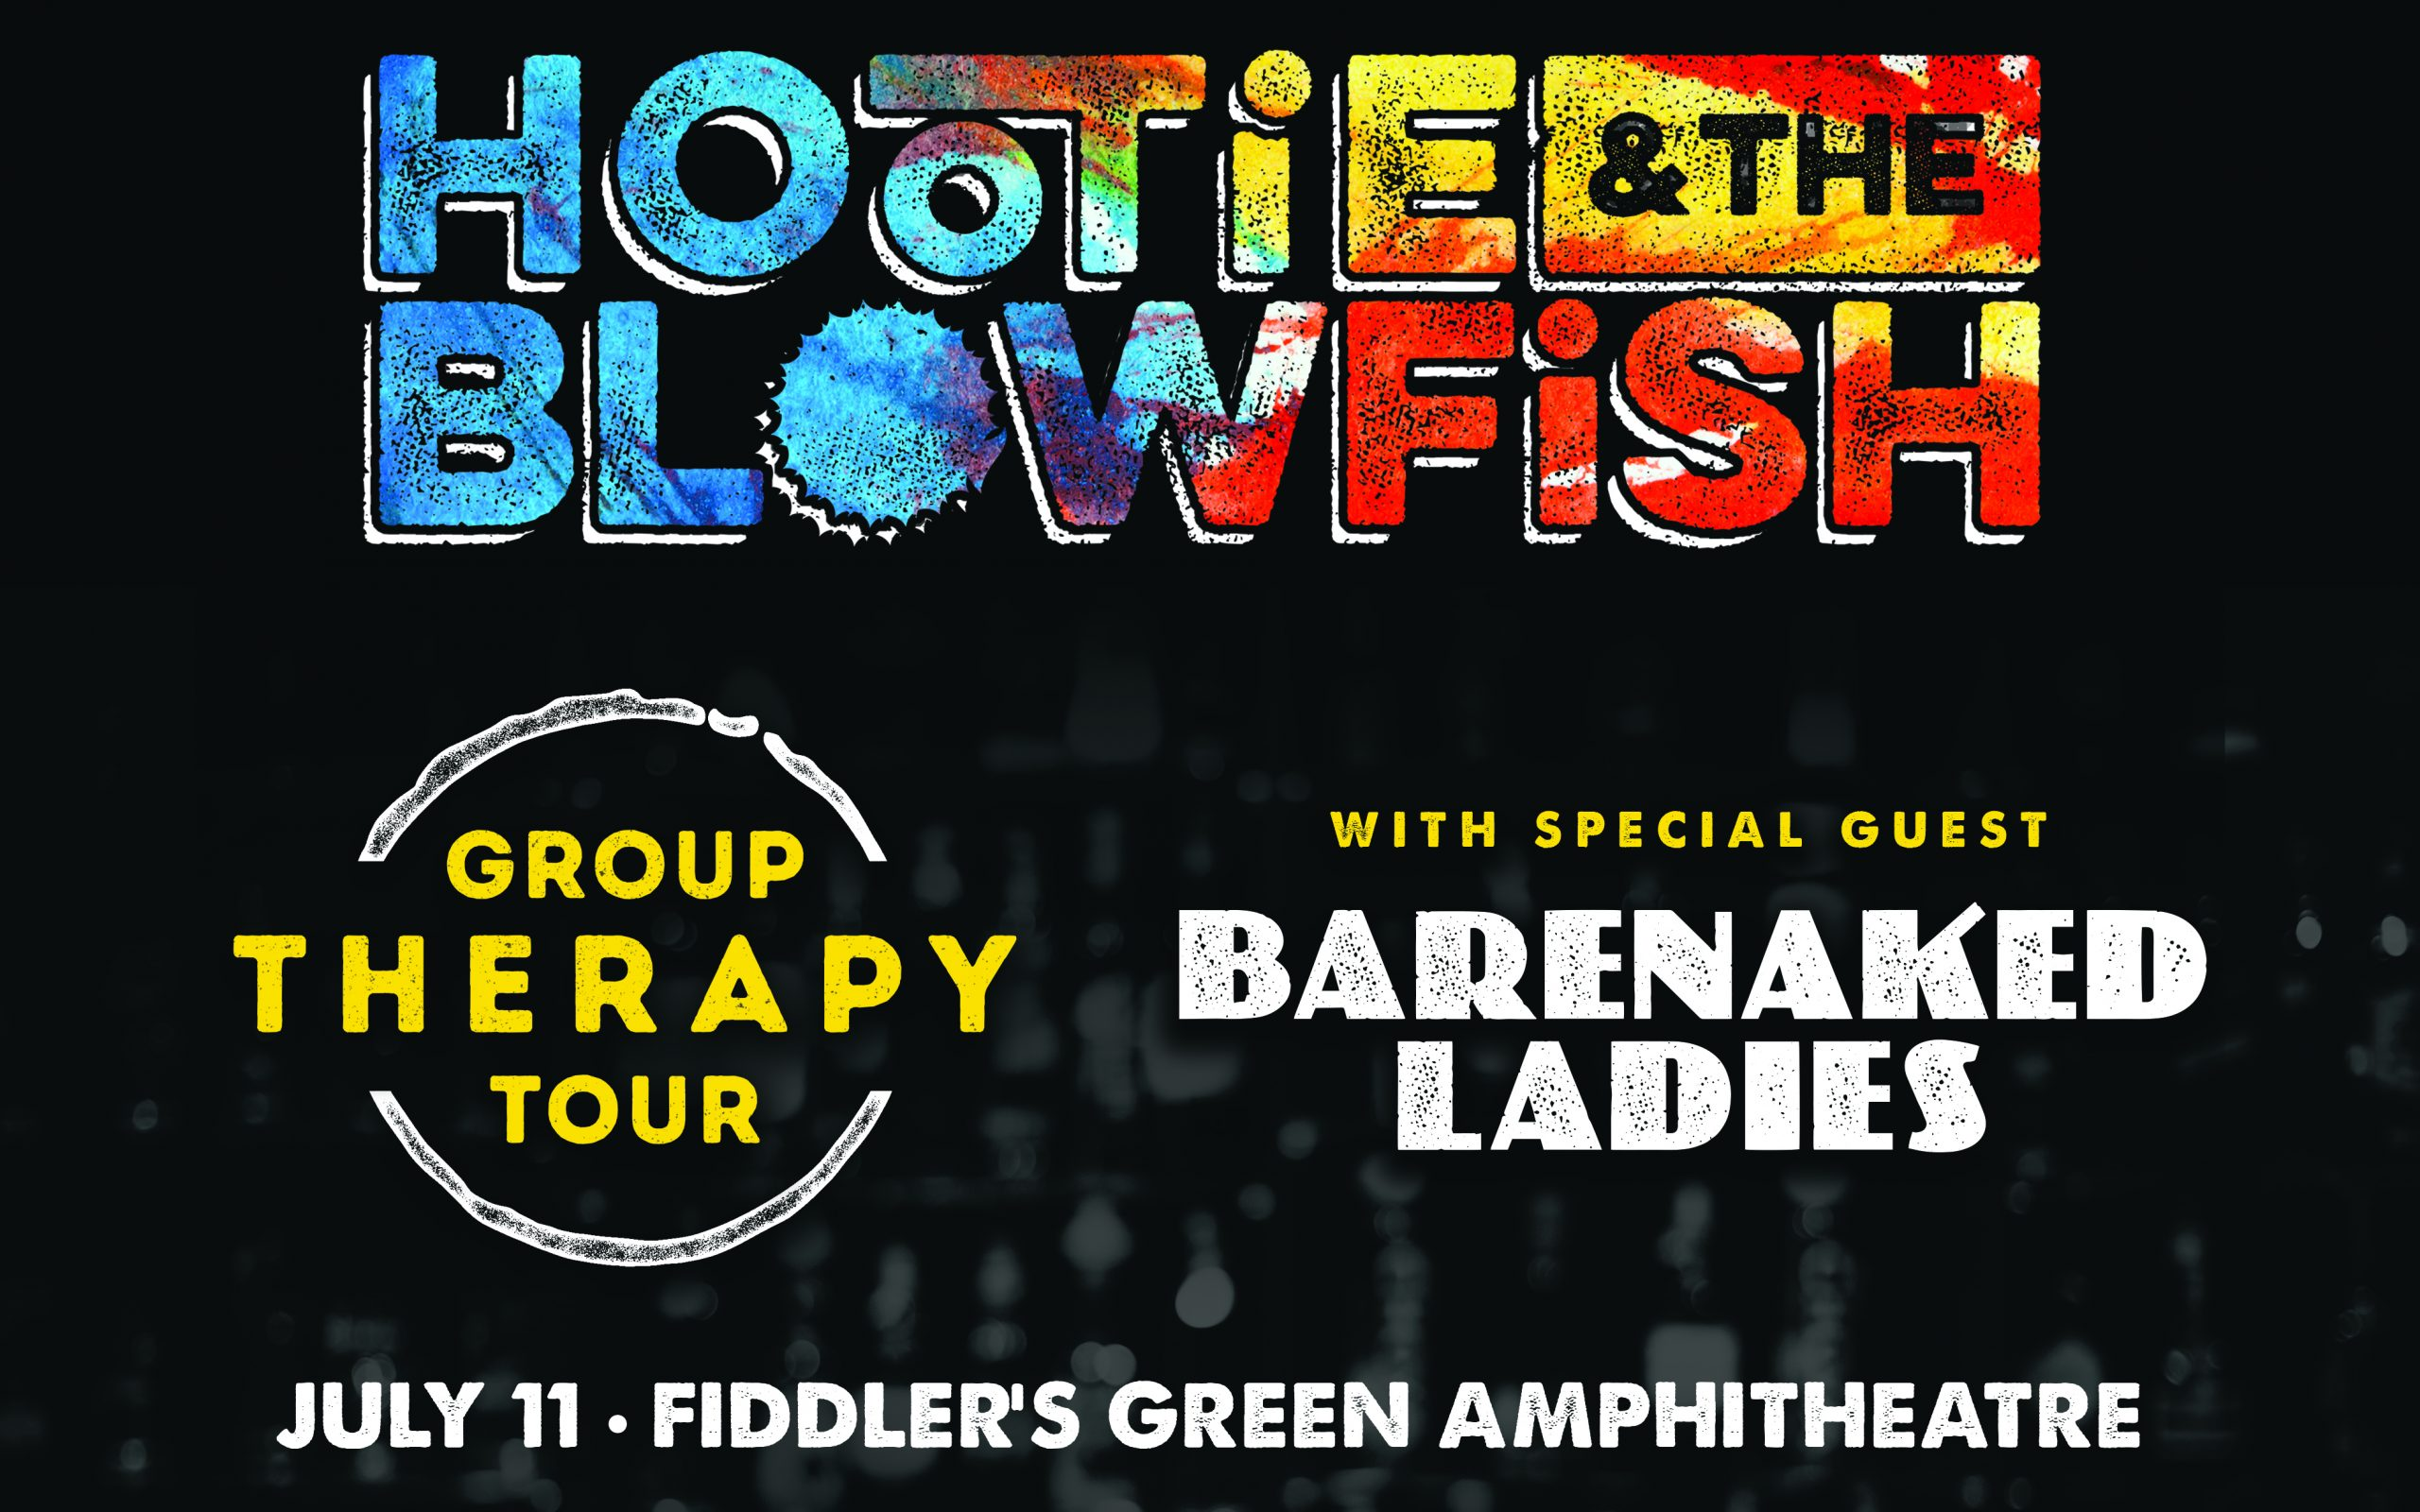 Feature: http://axs.com/events/366052/hootie-the-blowfish-tickets